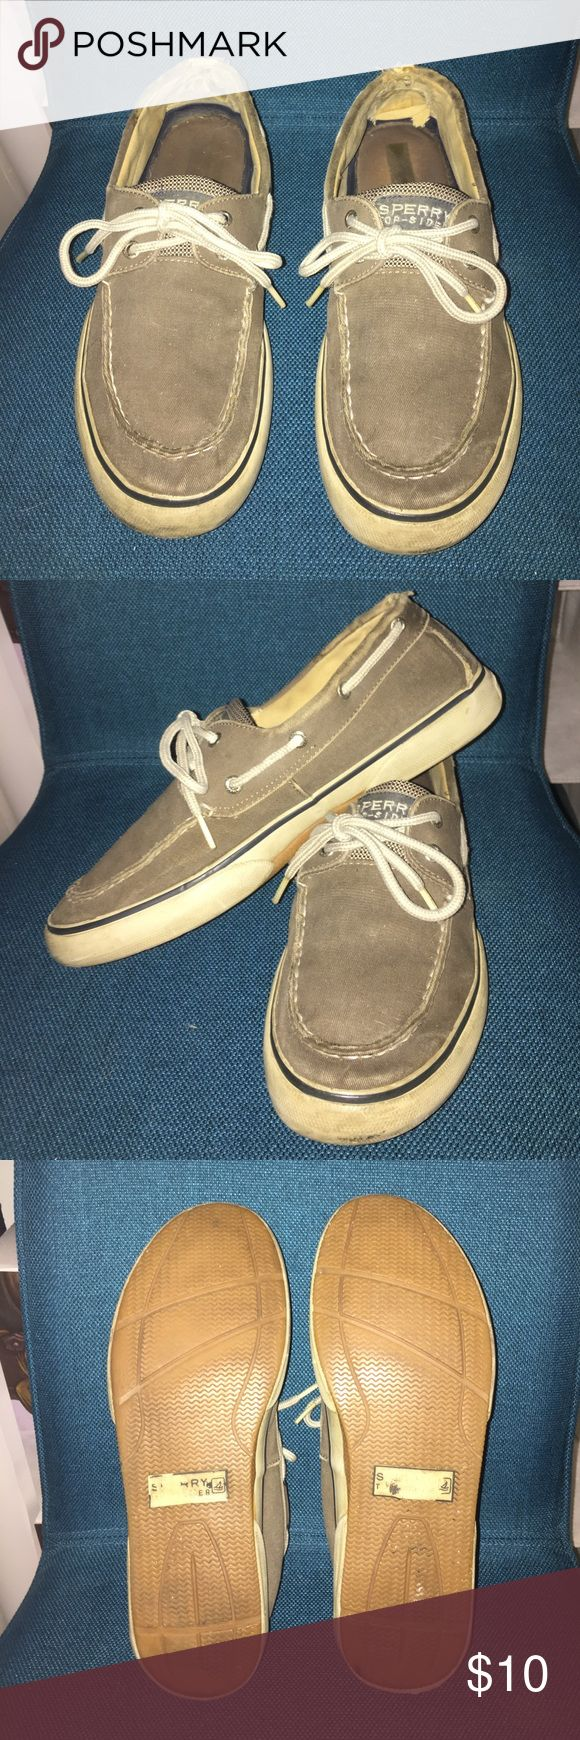 Sperry Top-Sider Men's Boat Shoes Sperry khaki top-sider men size 10. A worn counter, but still very durable. Sperry Top-Sider Shoes Boat Shoes